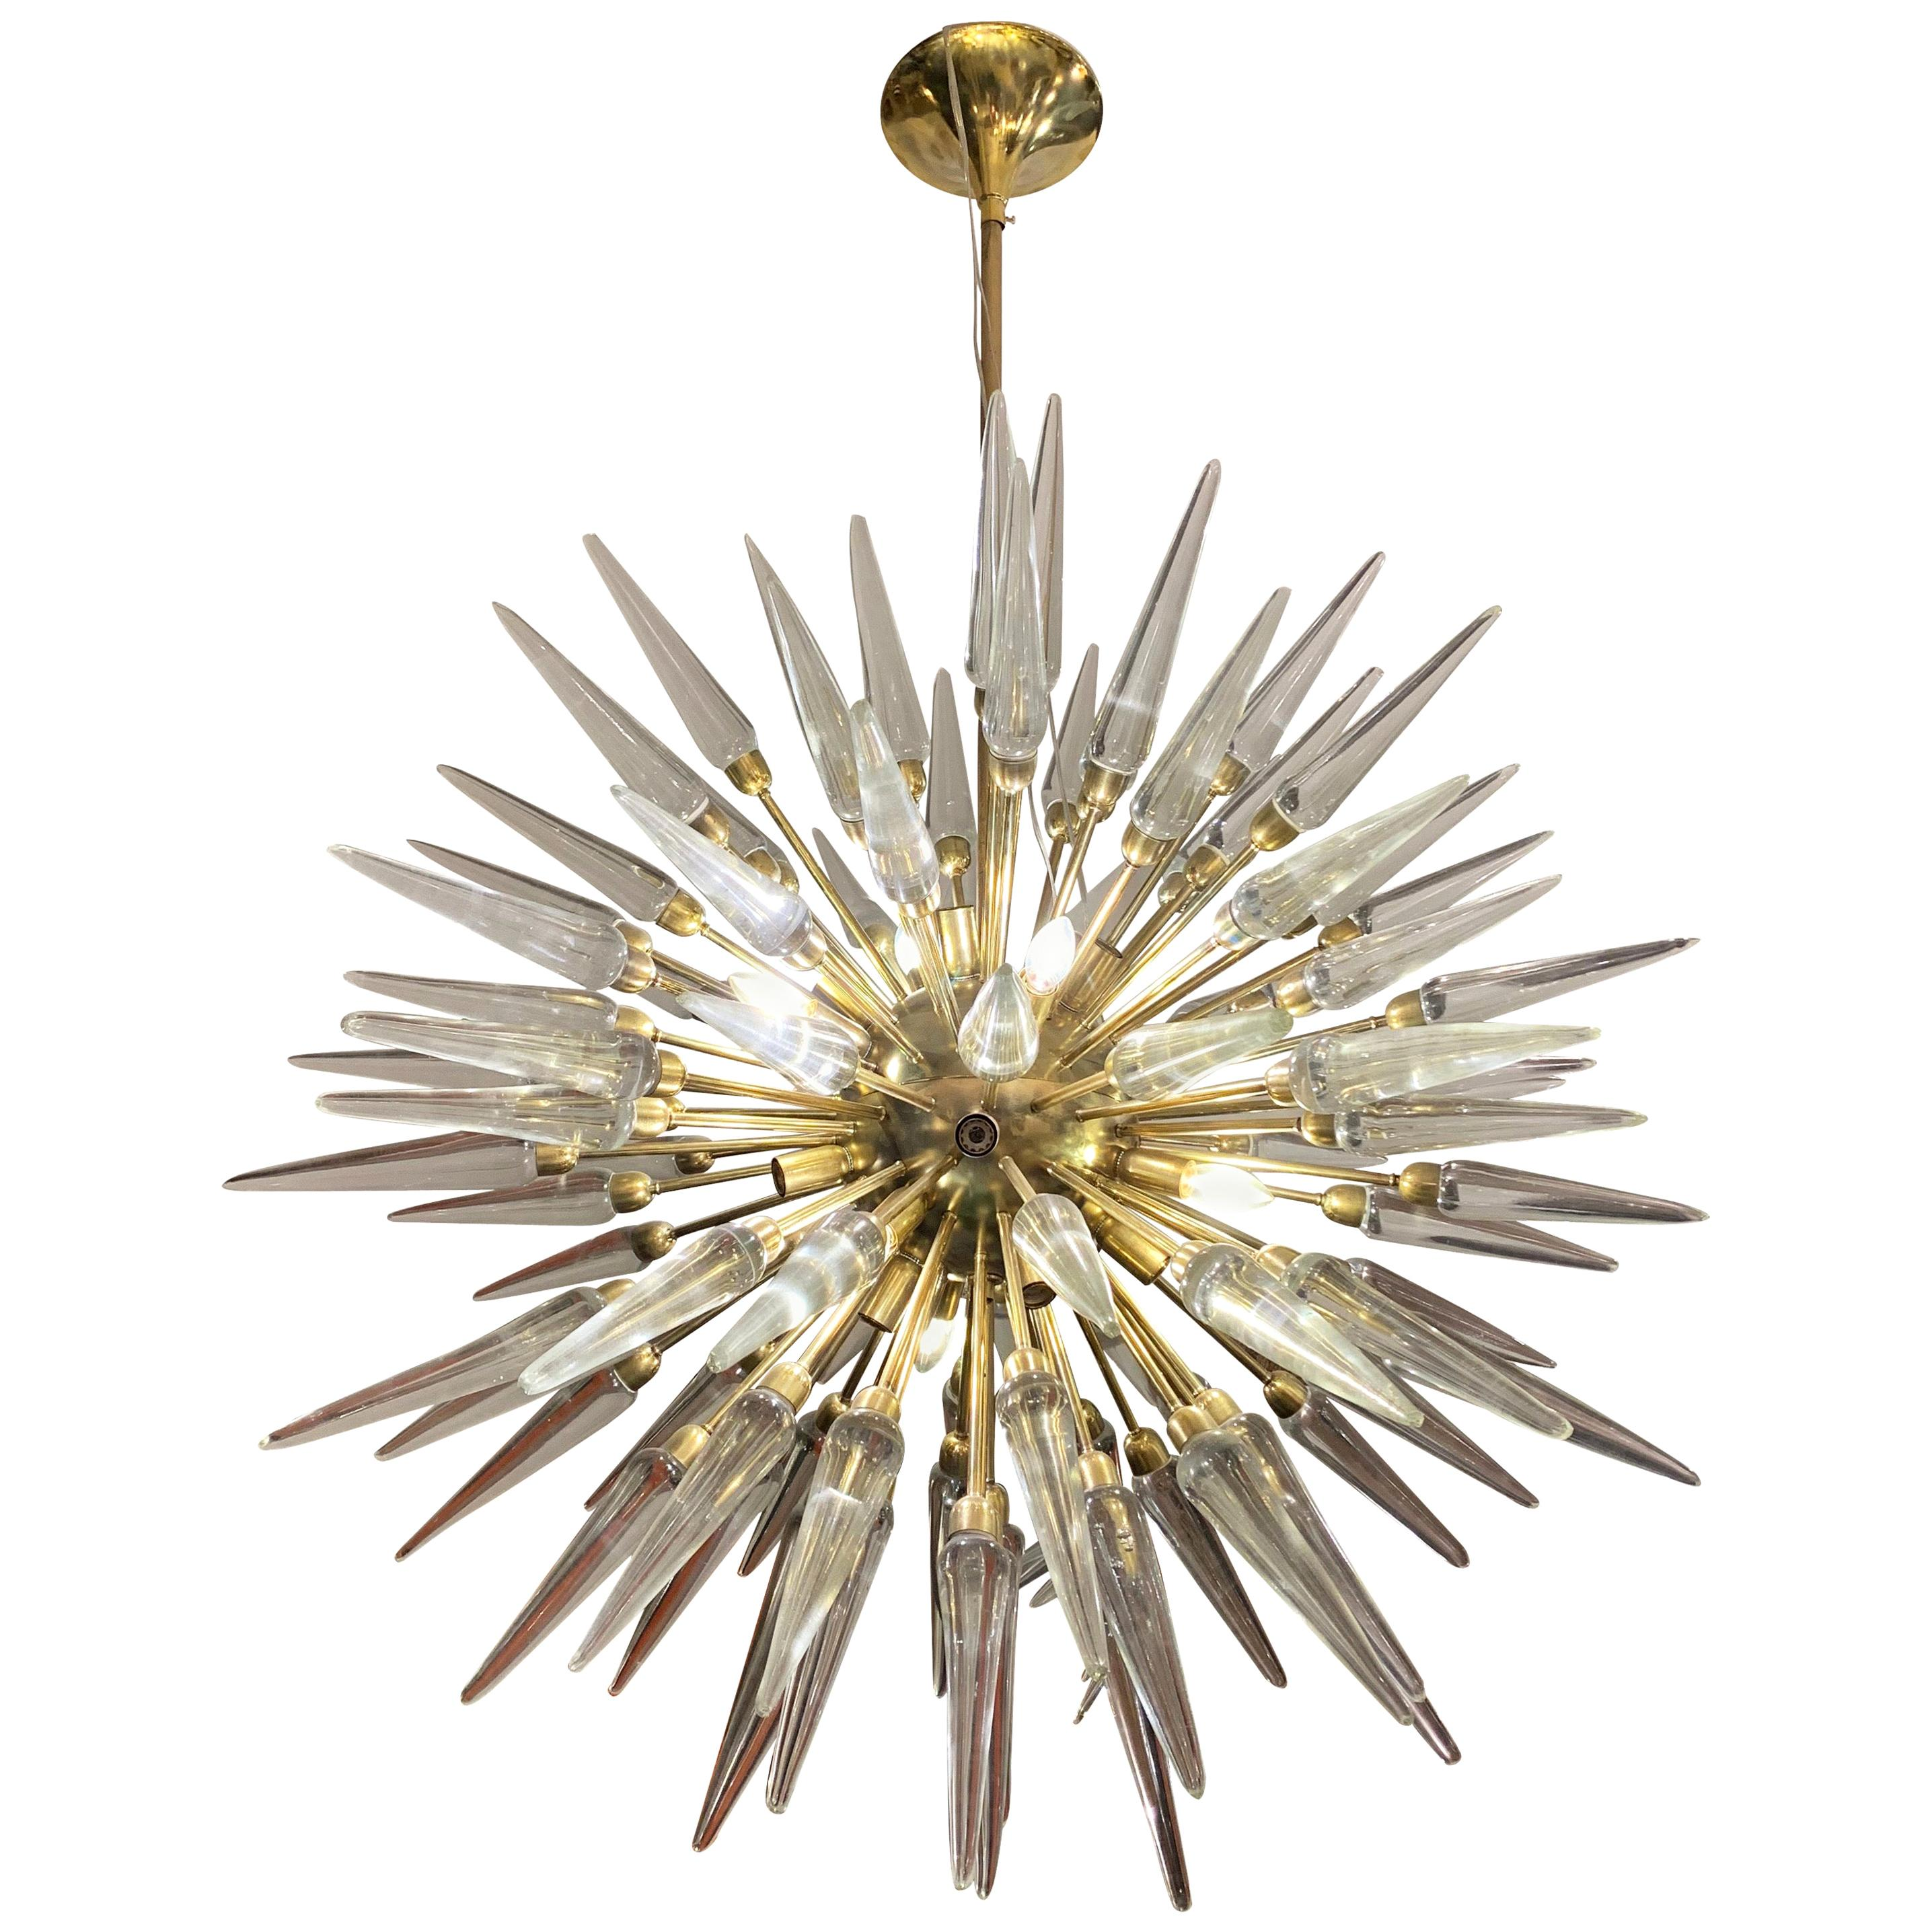 Brass Sputnik Chandelier with Murano Clear Glass Tips, 1970s